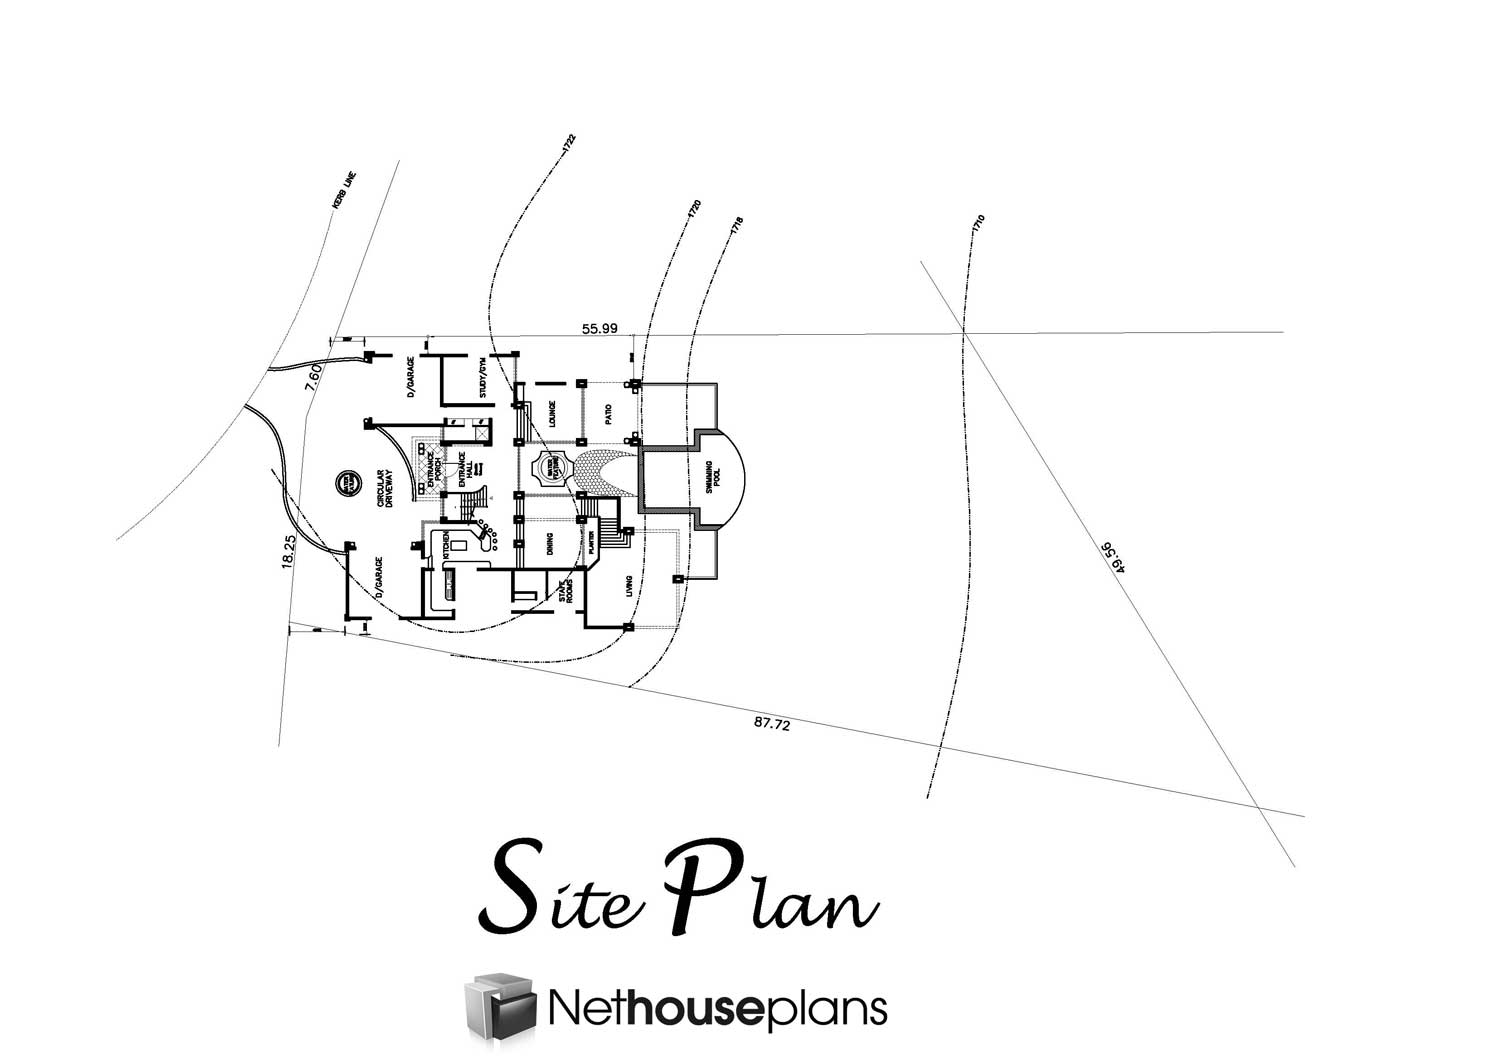 4 bedroom modern house plans, 4 rooms house plans, 4 bedroom house plans south africa pdf, Nethouseplans